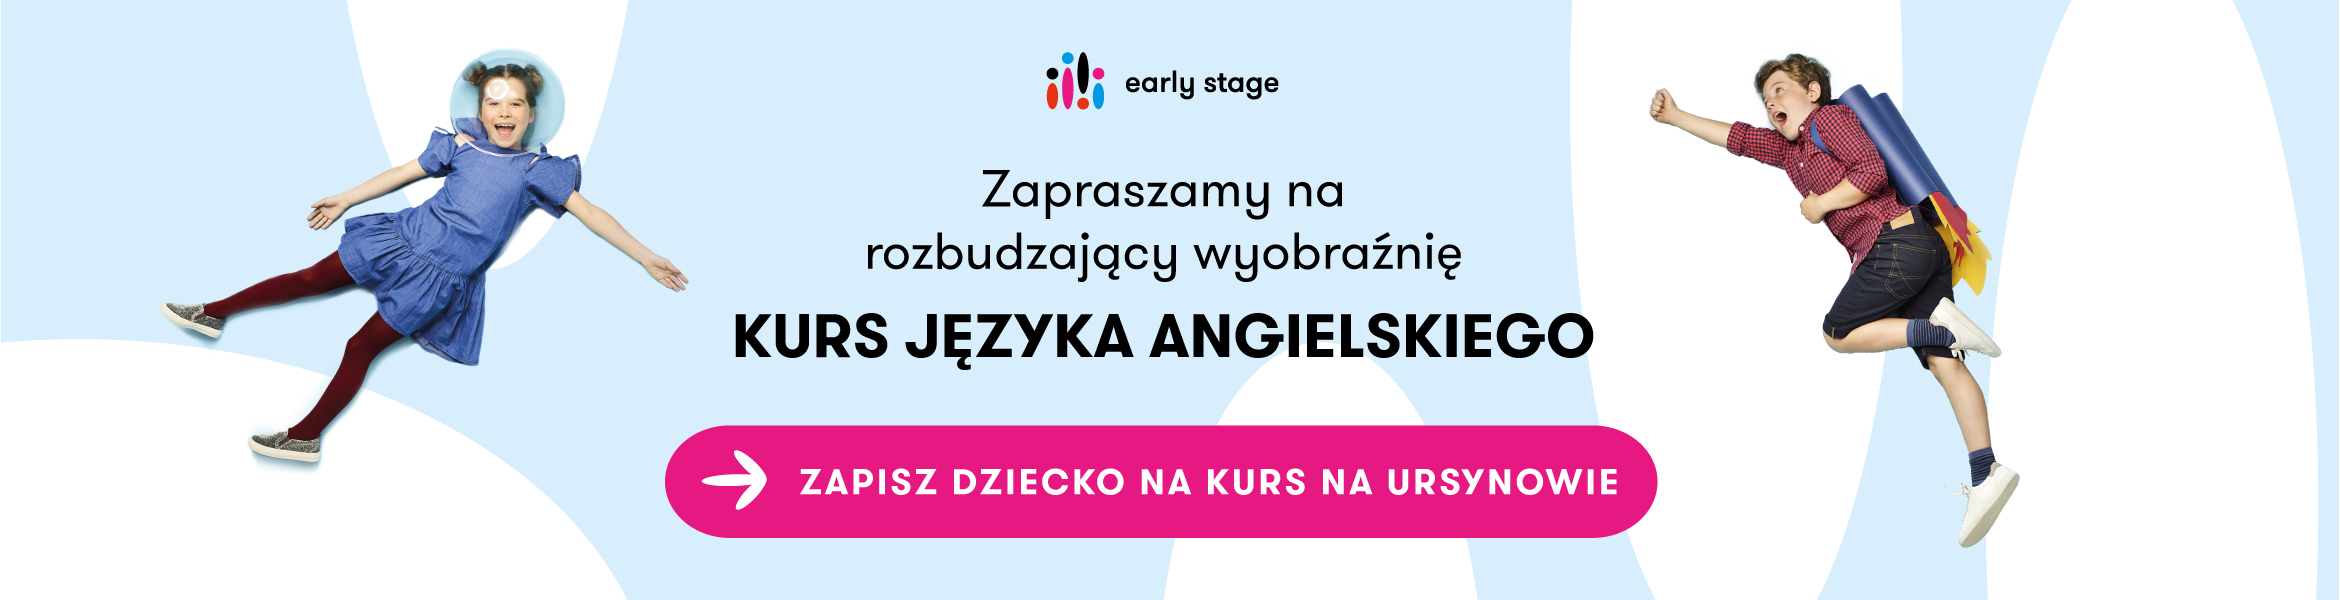 A1 EARLYstage 23.08.2021 - 22.09.2021